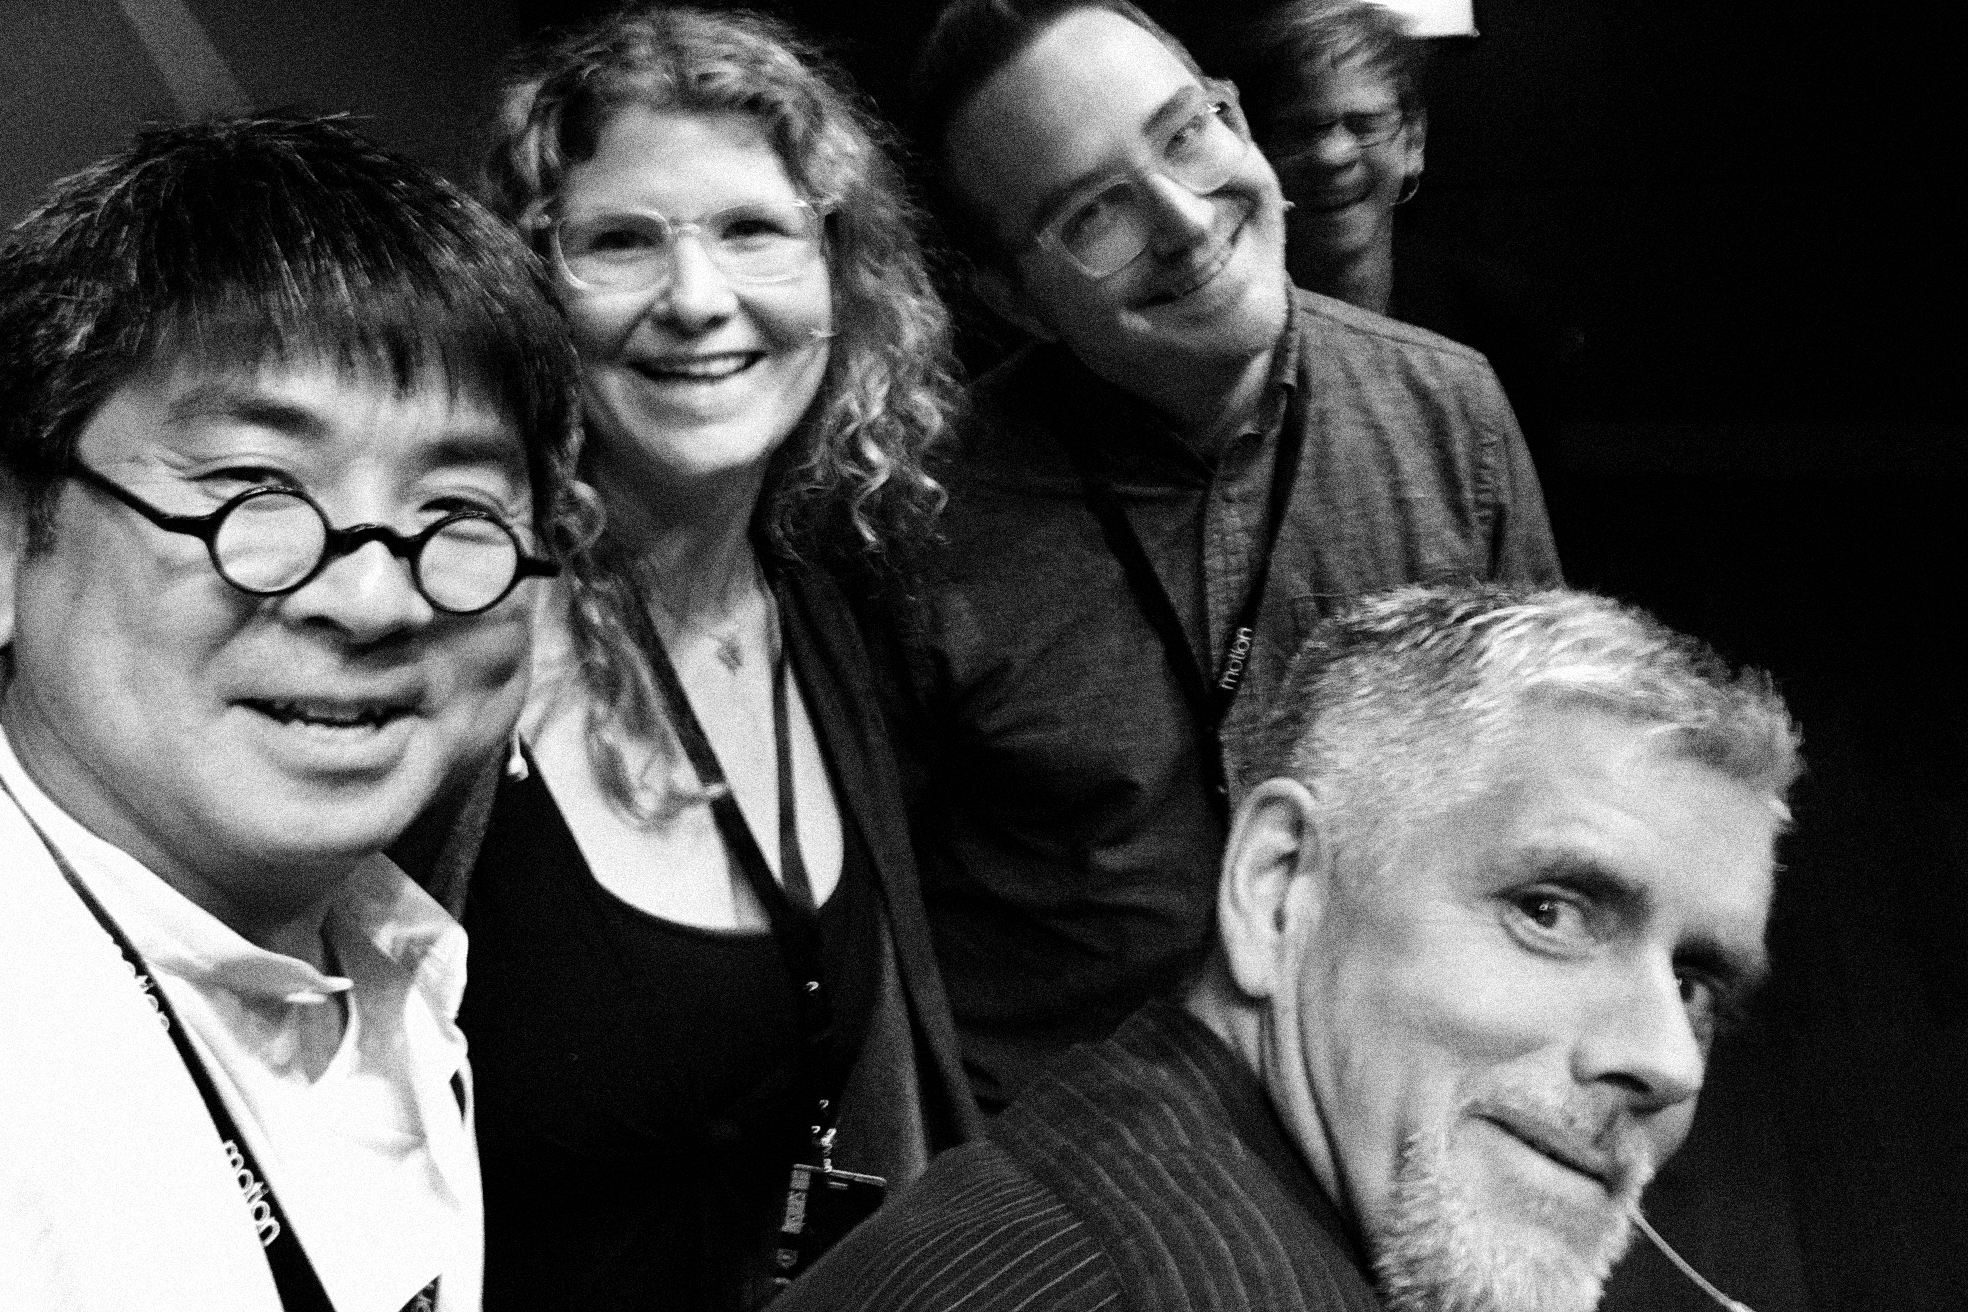 Motion, Santa Fe 2018 With Kyle Cooper (Prologue), Garson Yu (Yu + Co)  and John Lepore (Perception)